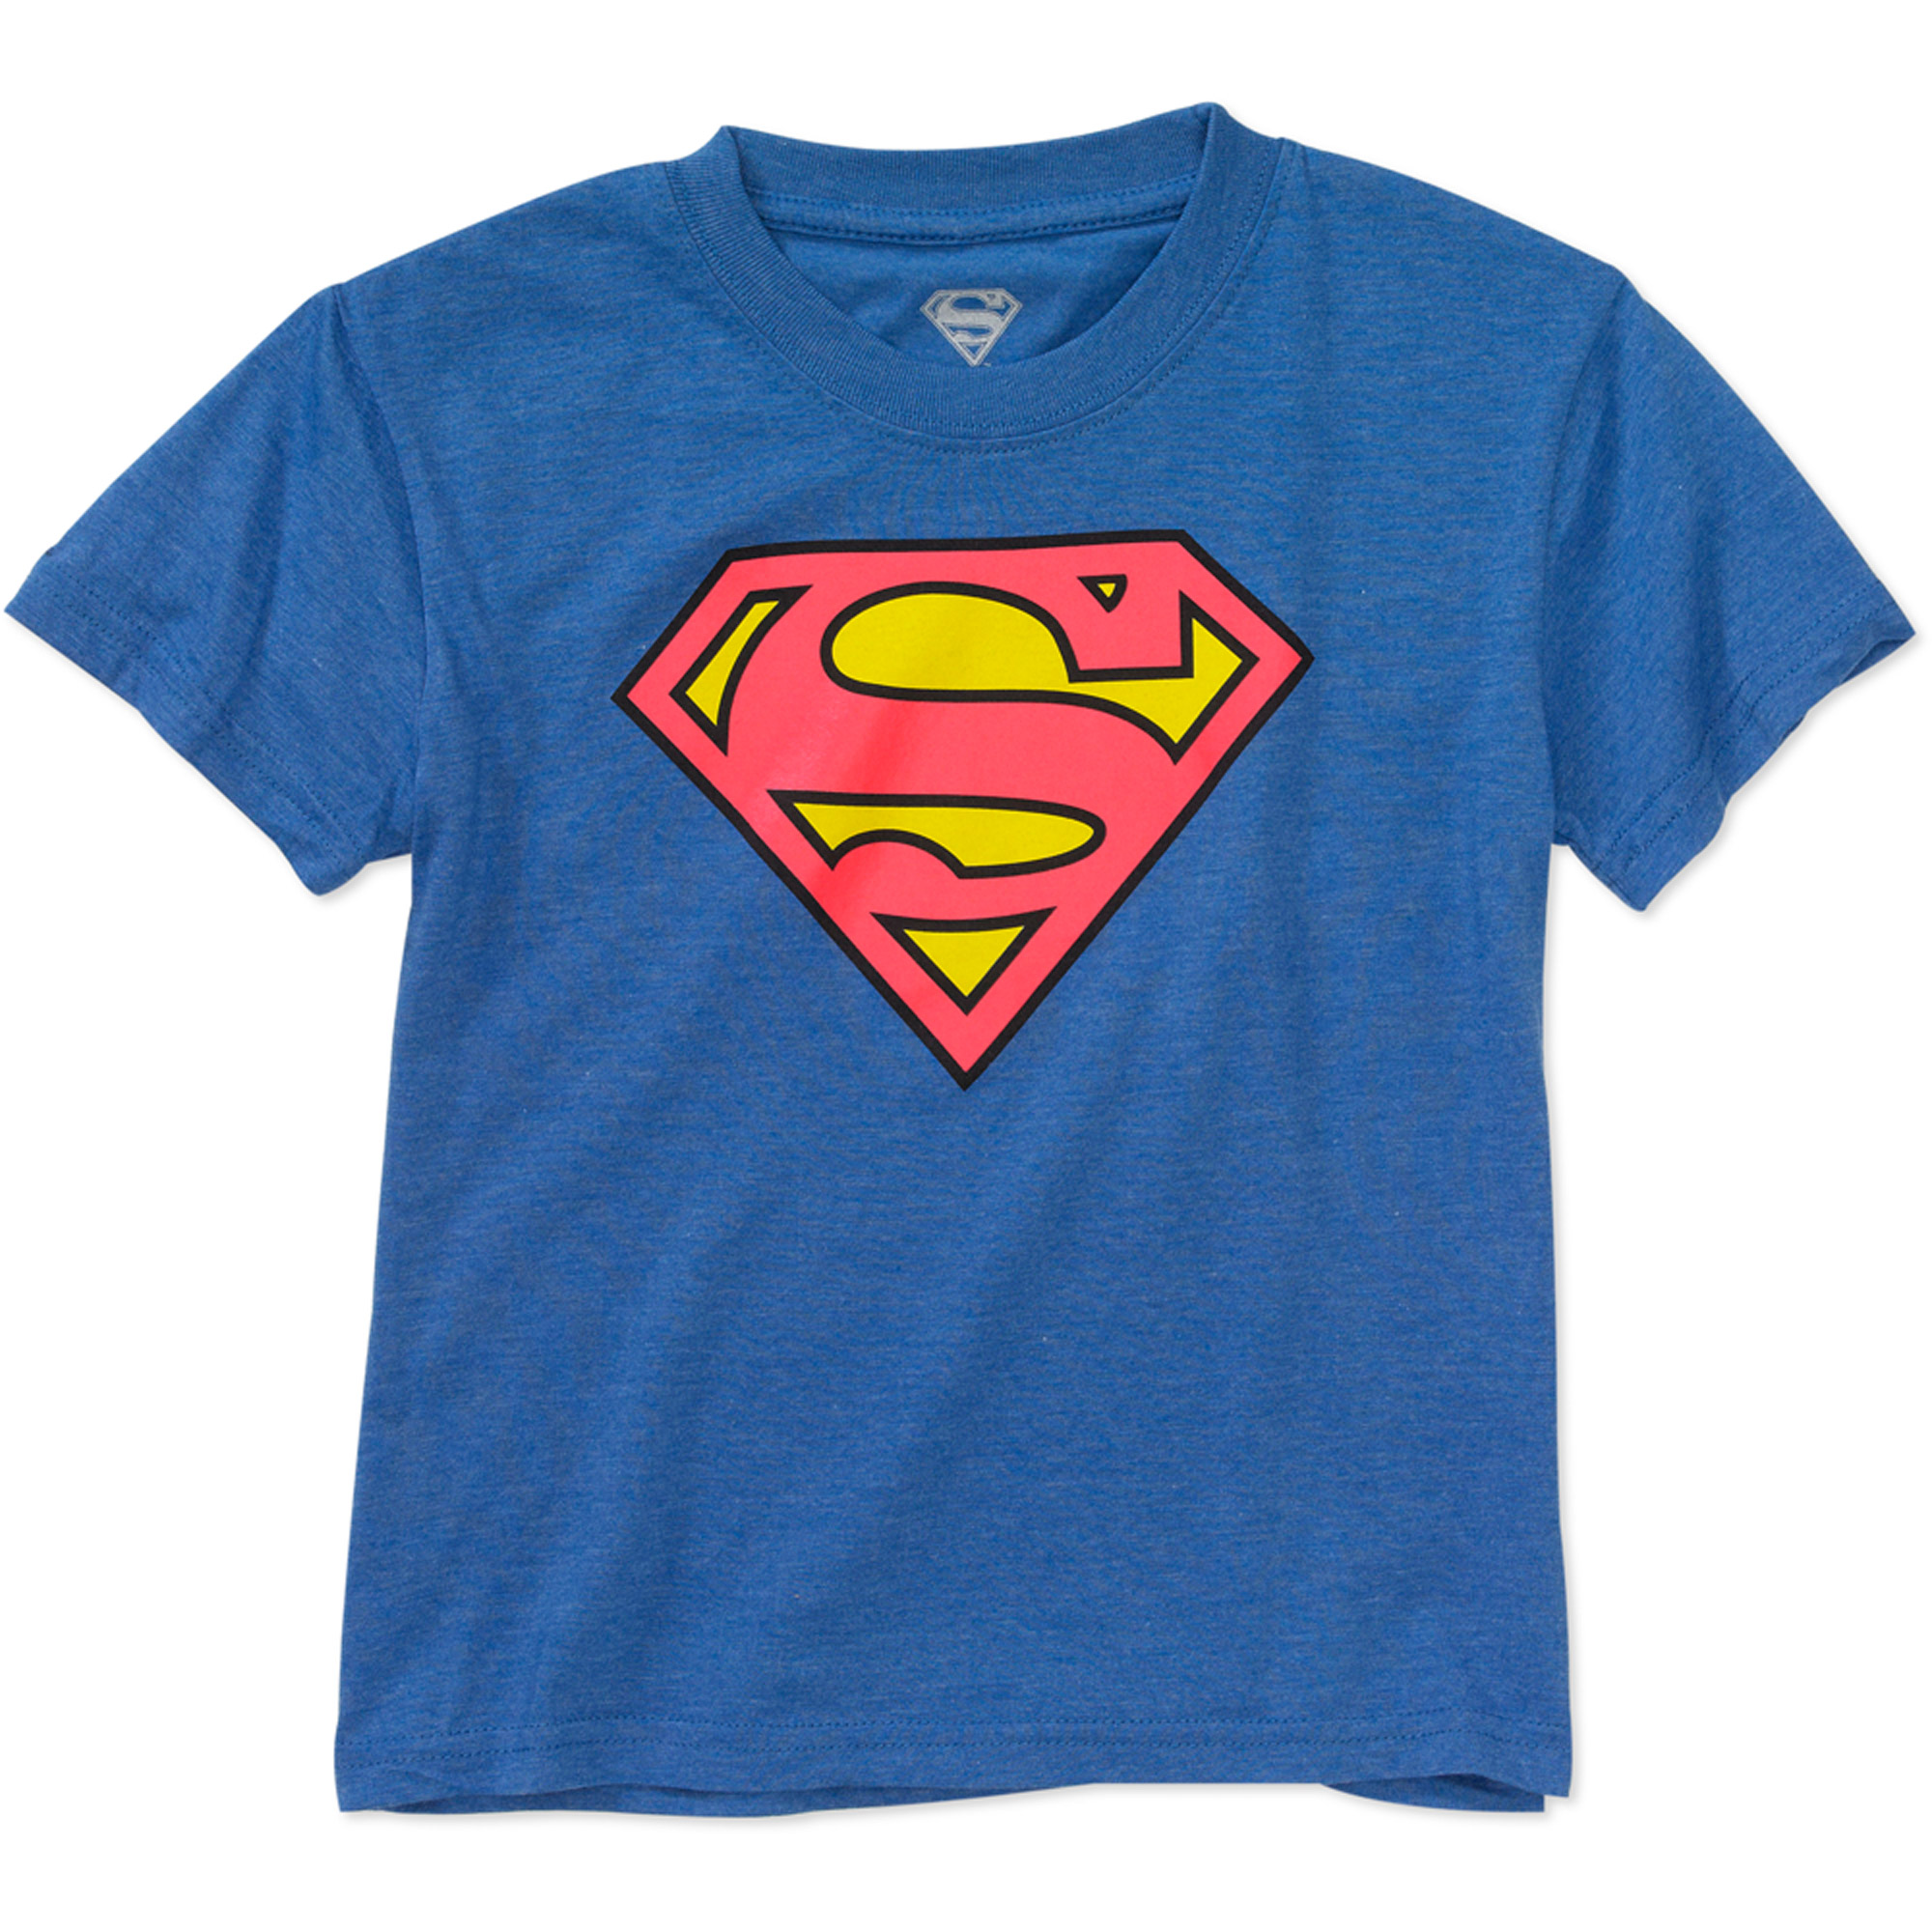 DC Comics Boys' Superman Graphic Tee